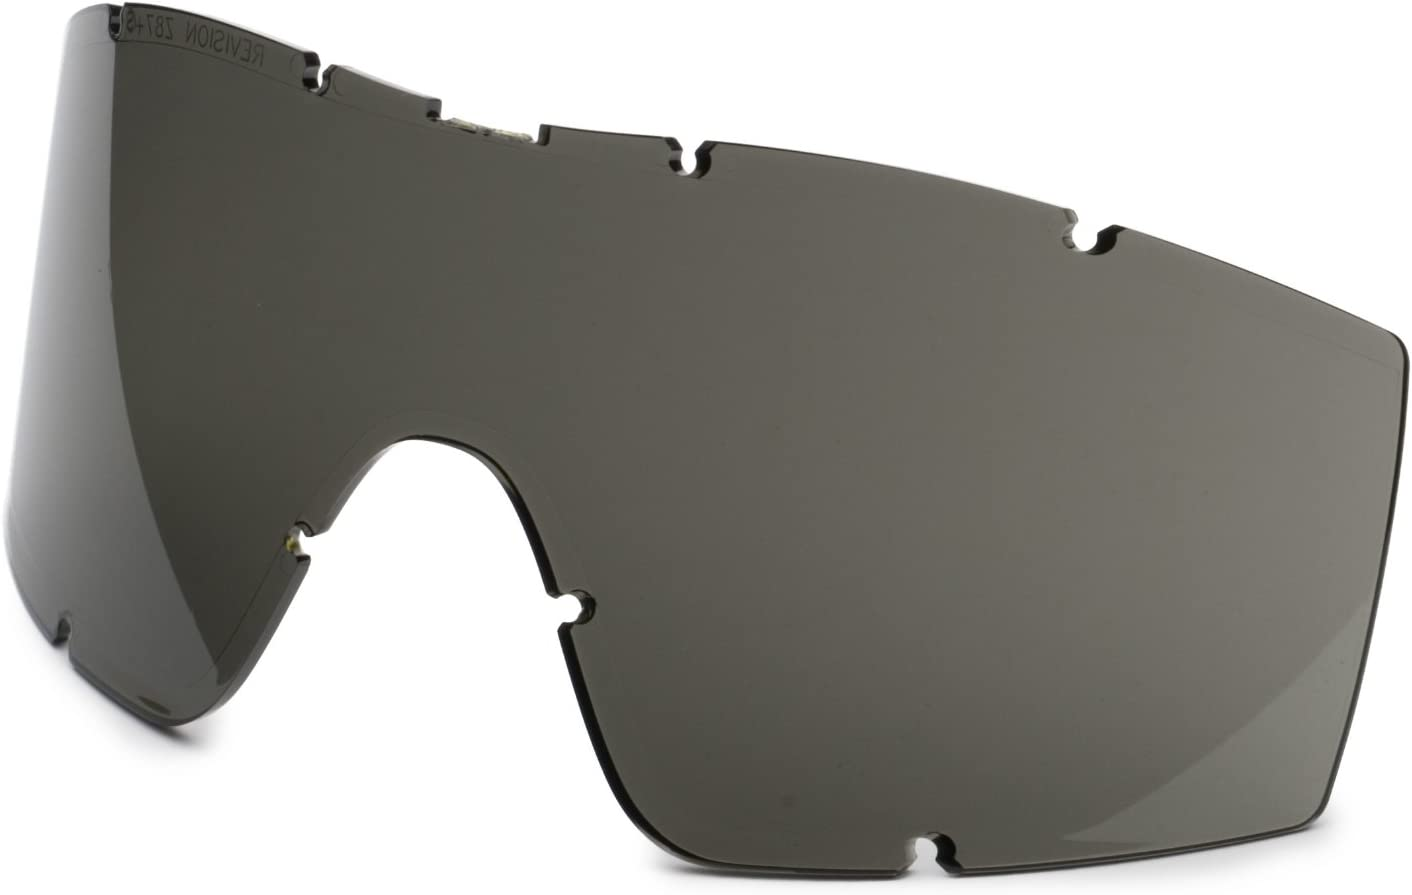 2021 model Revision Military Desert Locust Asian Goggle Replacement Online limited product